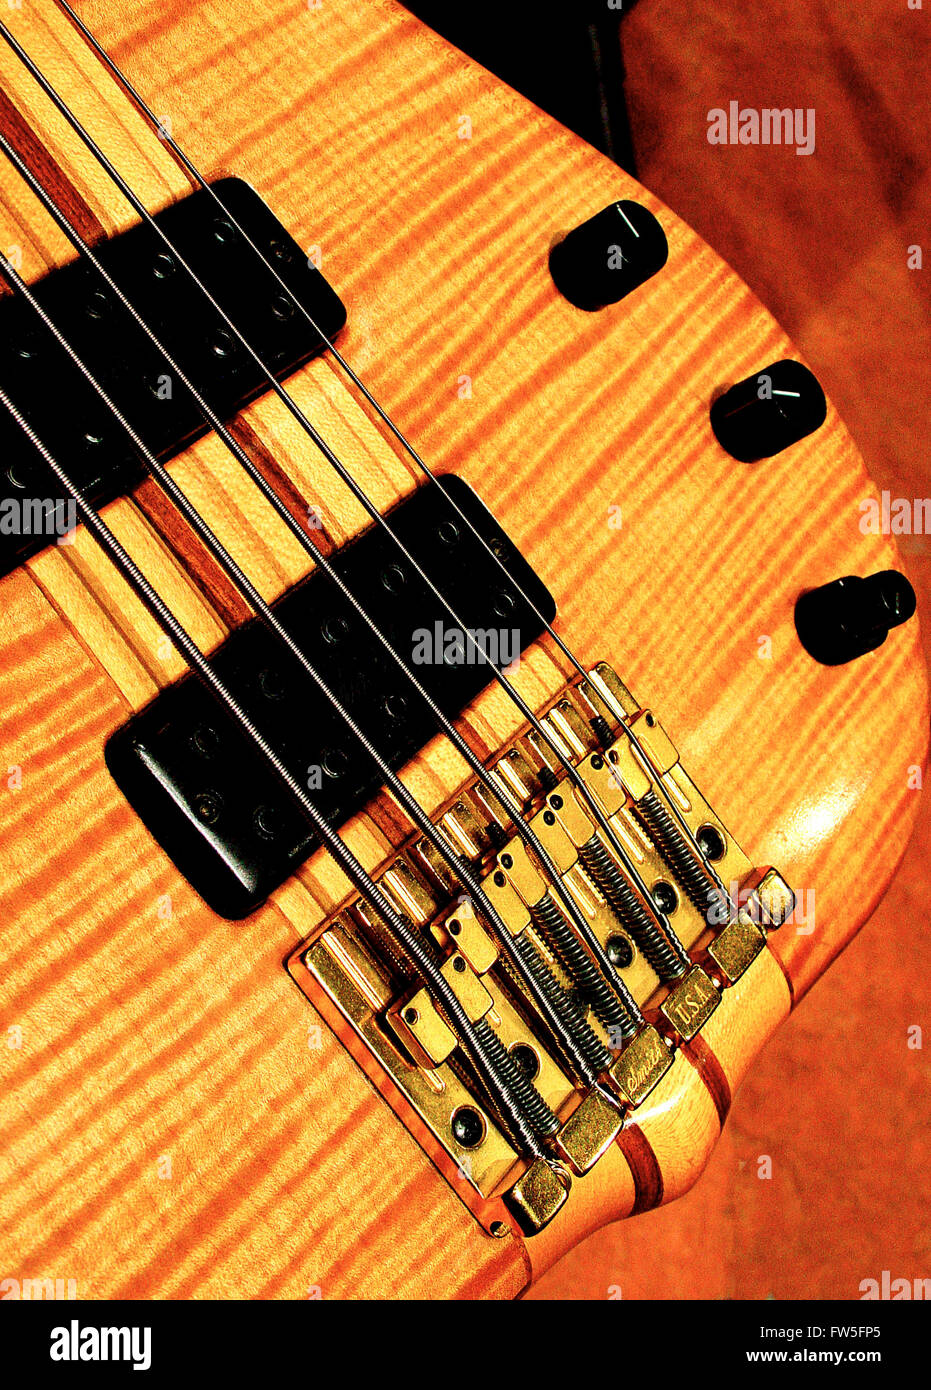 Electric bass guitar - showing electronic pick-up, strings and ...